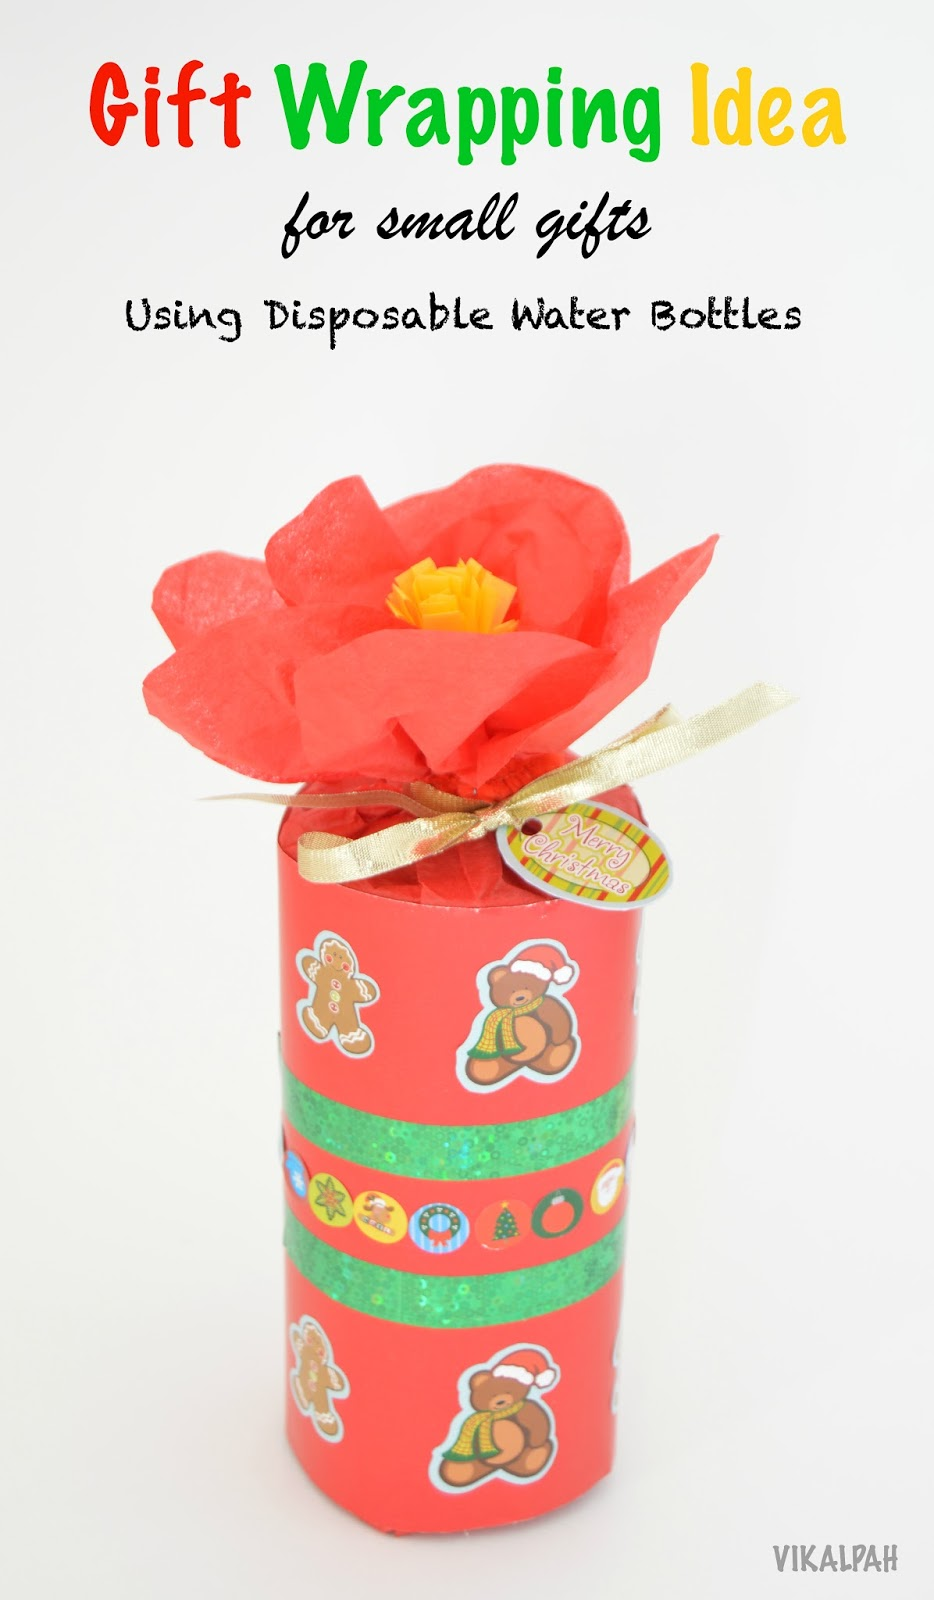 Vikalpah gift wrapping ideas for small gifts using disposable the right size box to put the gift in do you know that a disposable water bottle can do that isnt it a nice way to re use them lets see how negle Choice Image